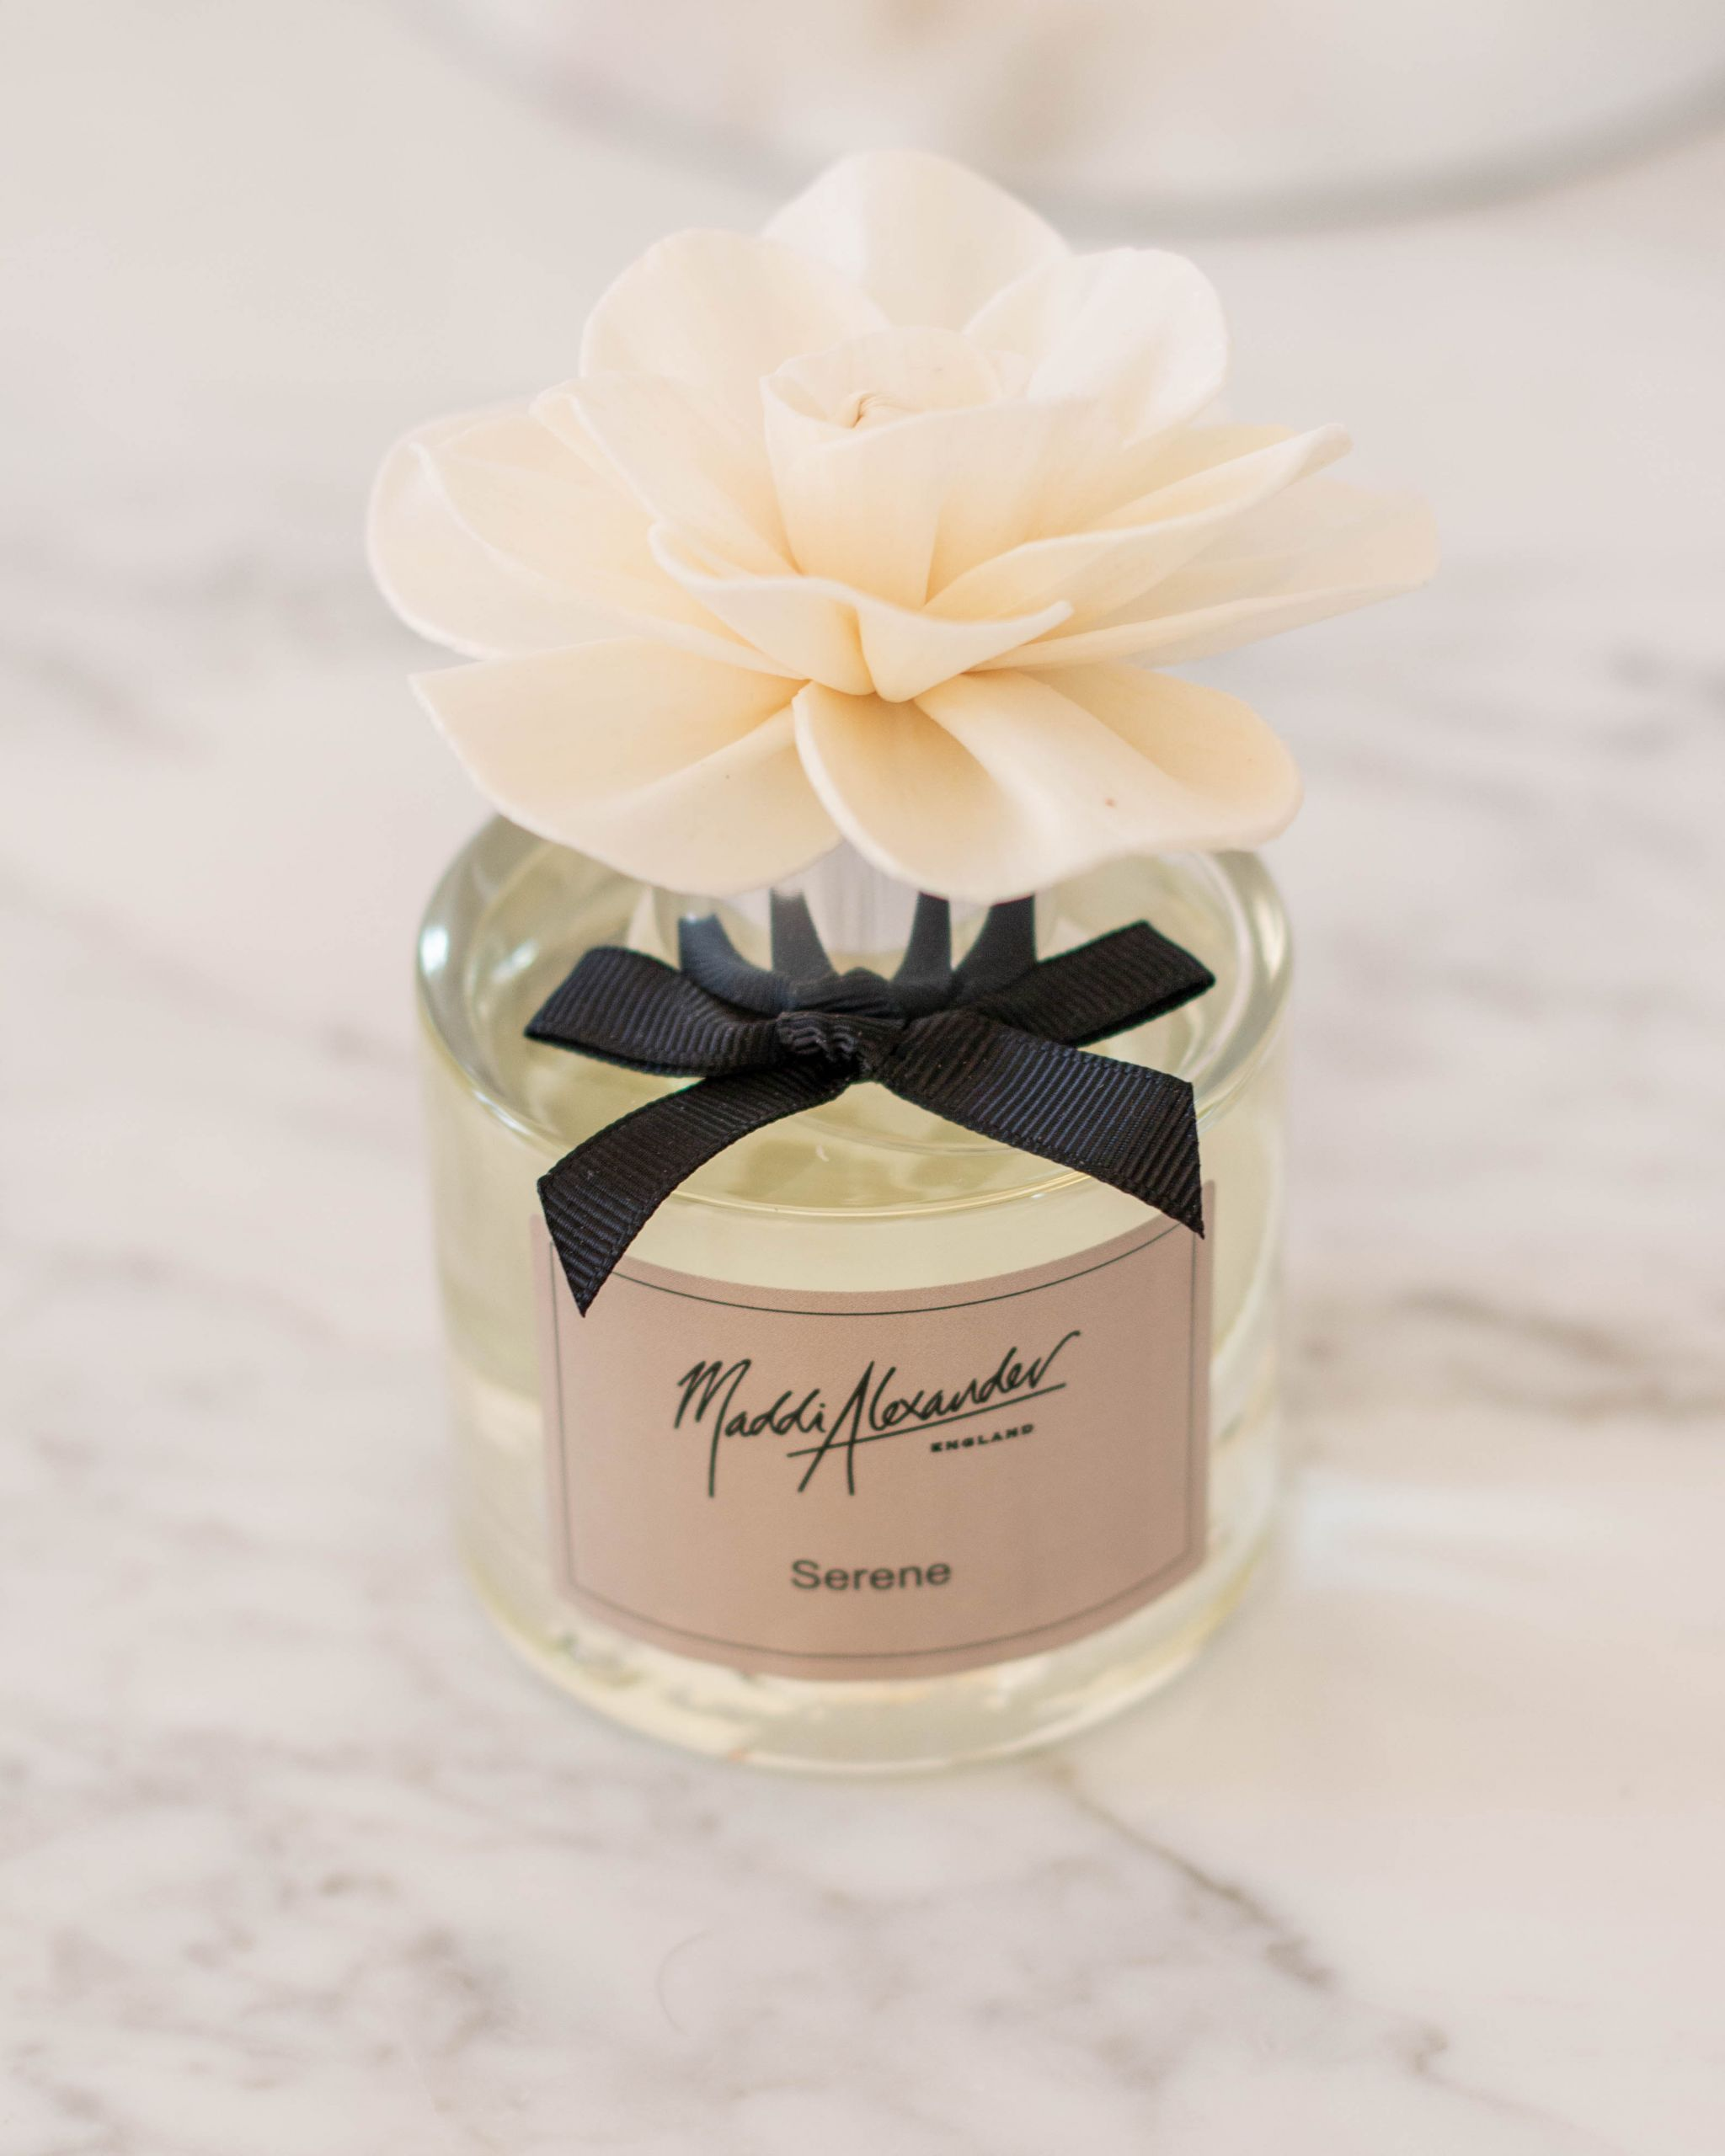 Maddi Alexander Social Media Photography Lifestyle Content Creation Fragrance Diffuser